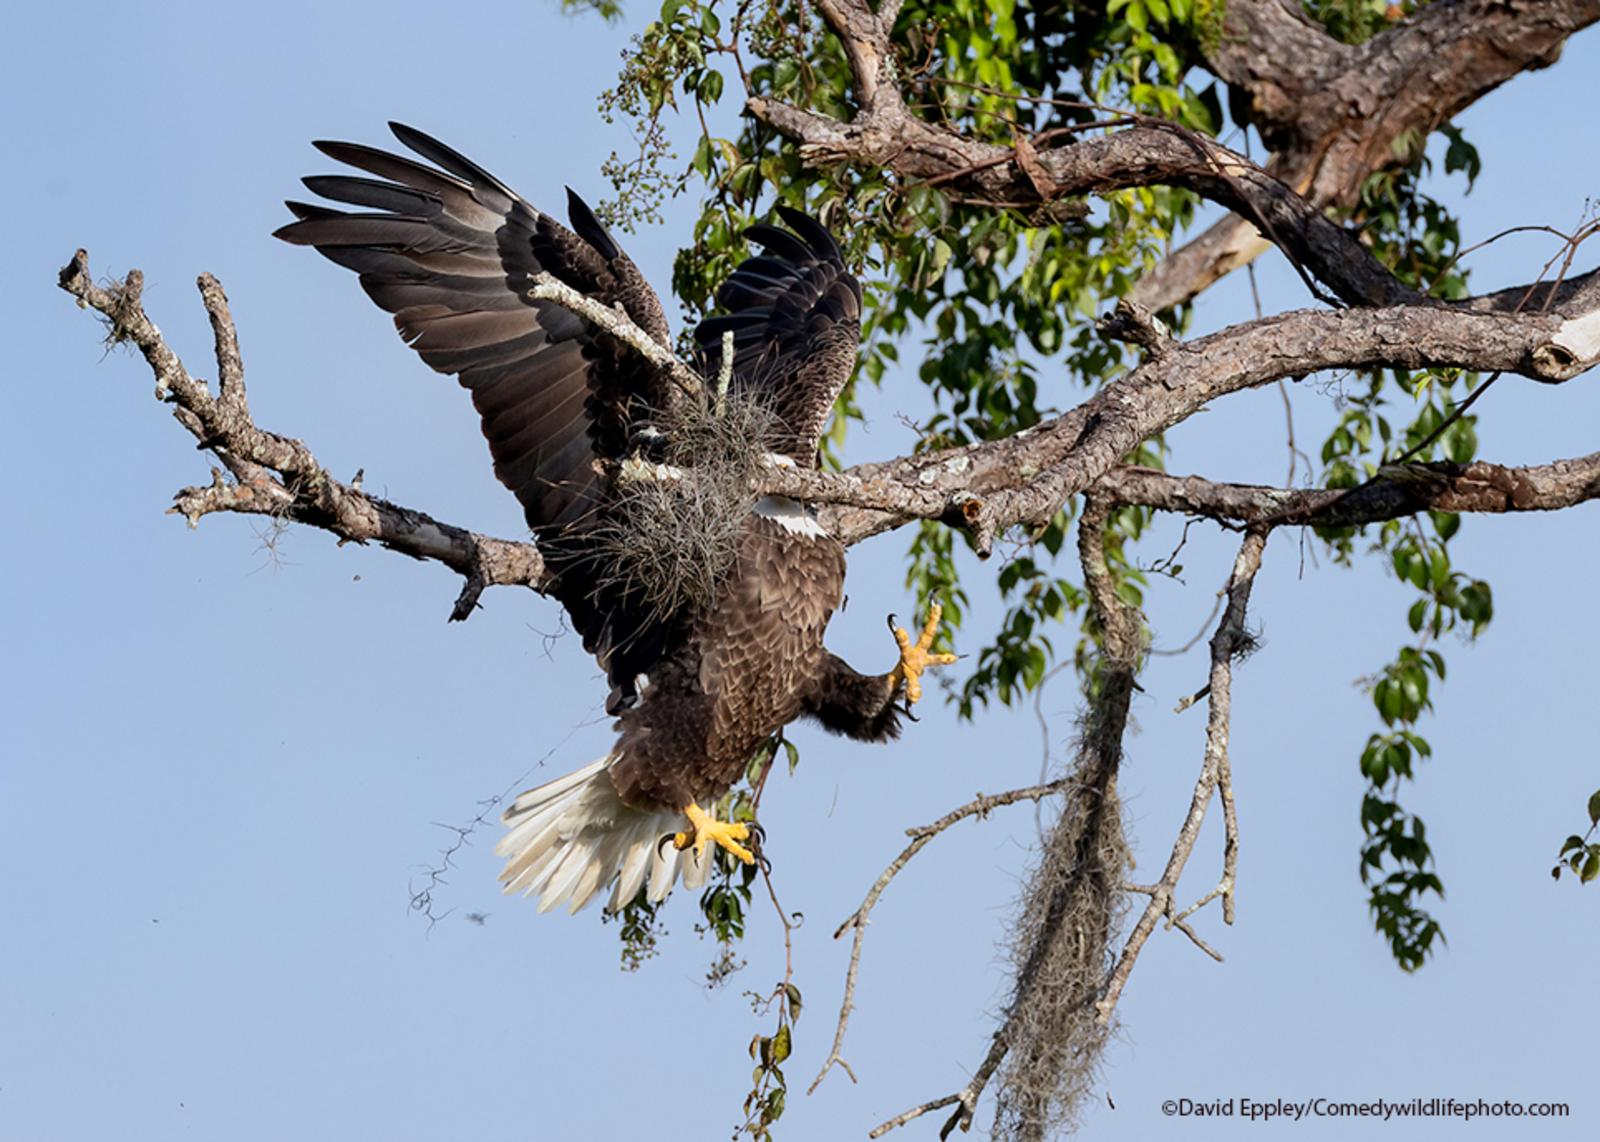 A bald eagle flies face first into a tree branch.